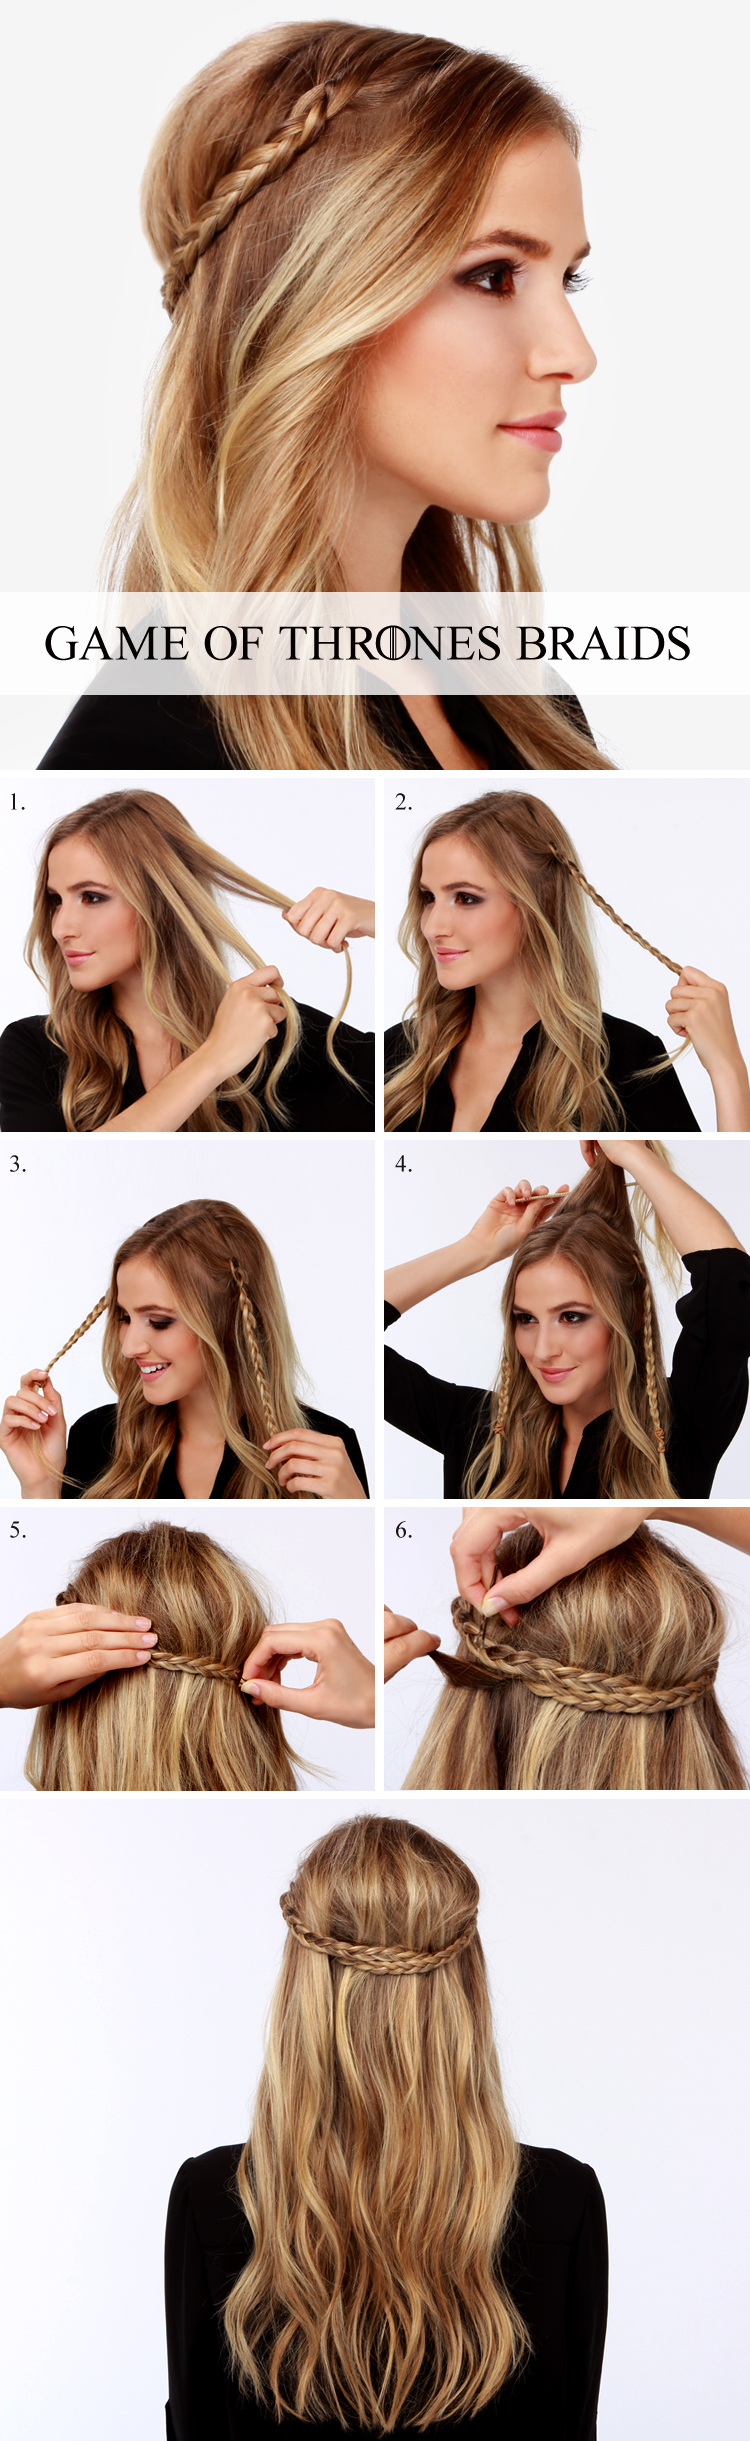 LuLu*s How-To: Game of Thrones Braid Tutorial! at LuLus.com!